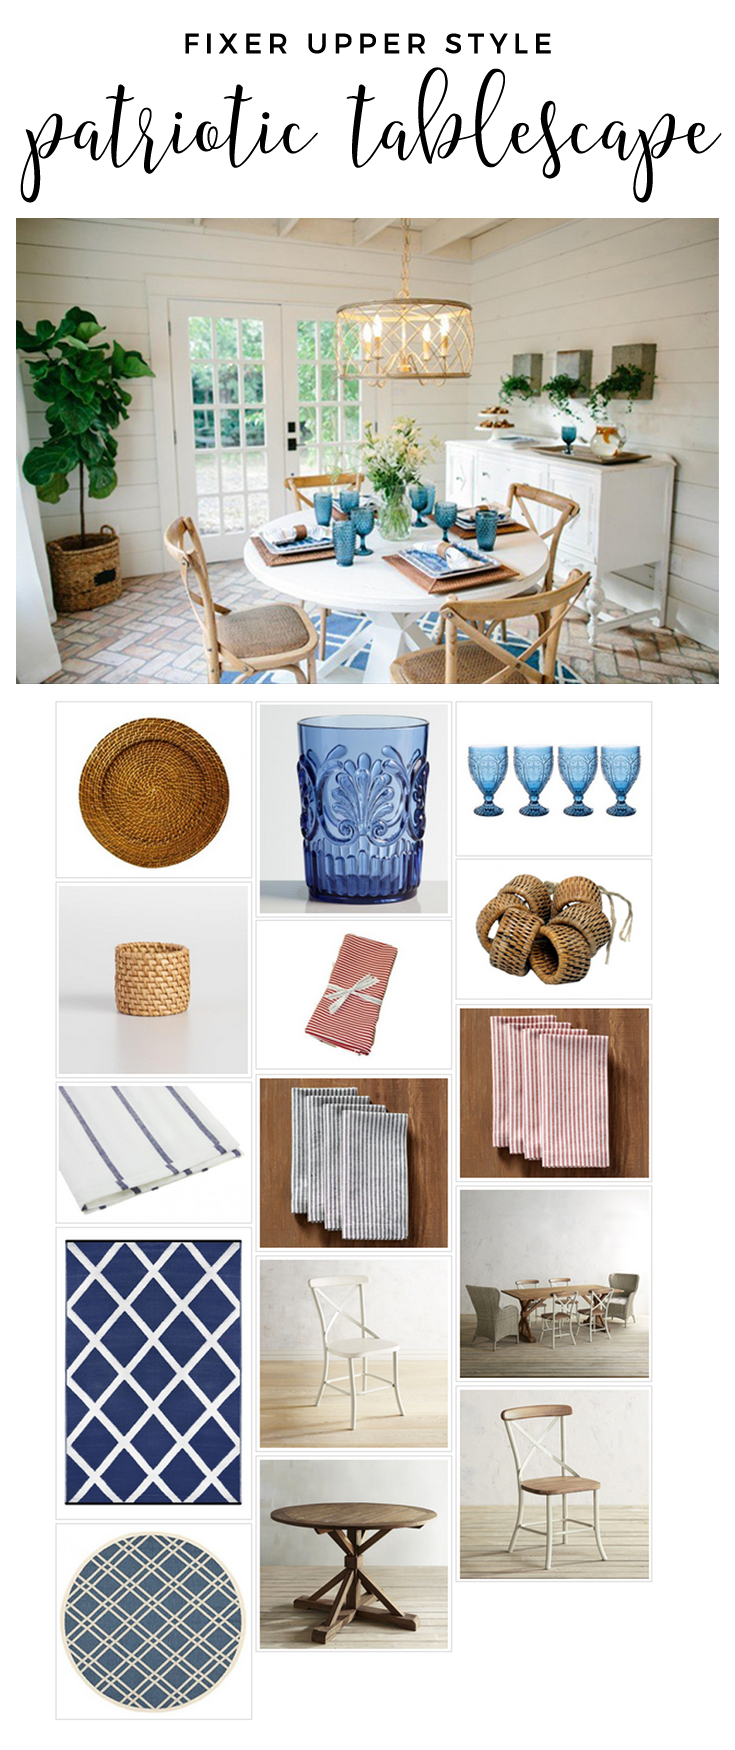 Fixer Upper Style Patriotic Tablescape! Recreate the look using this shopping guide!